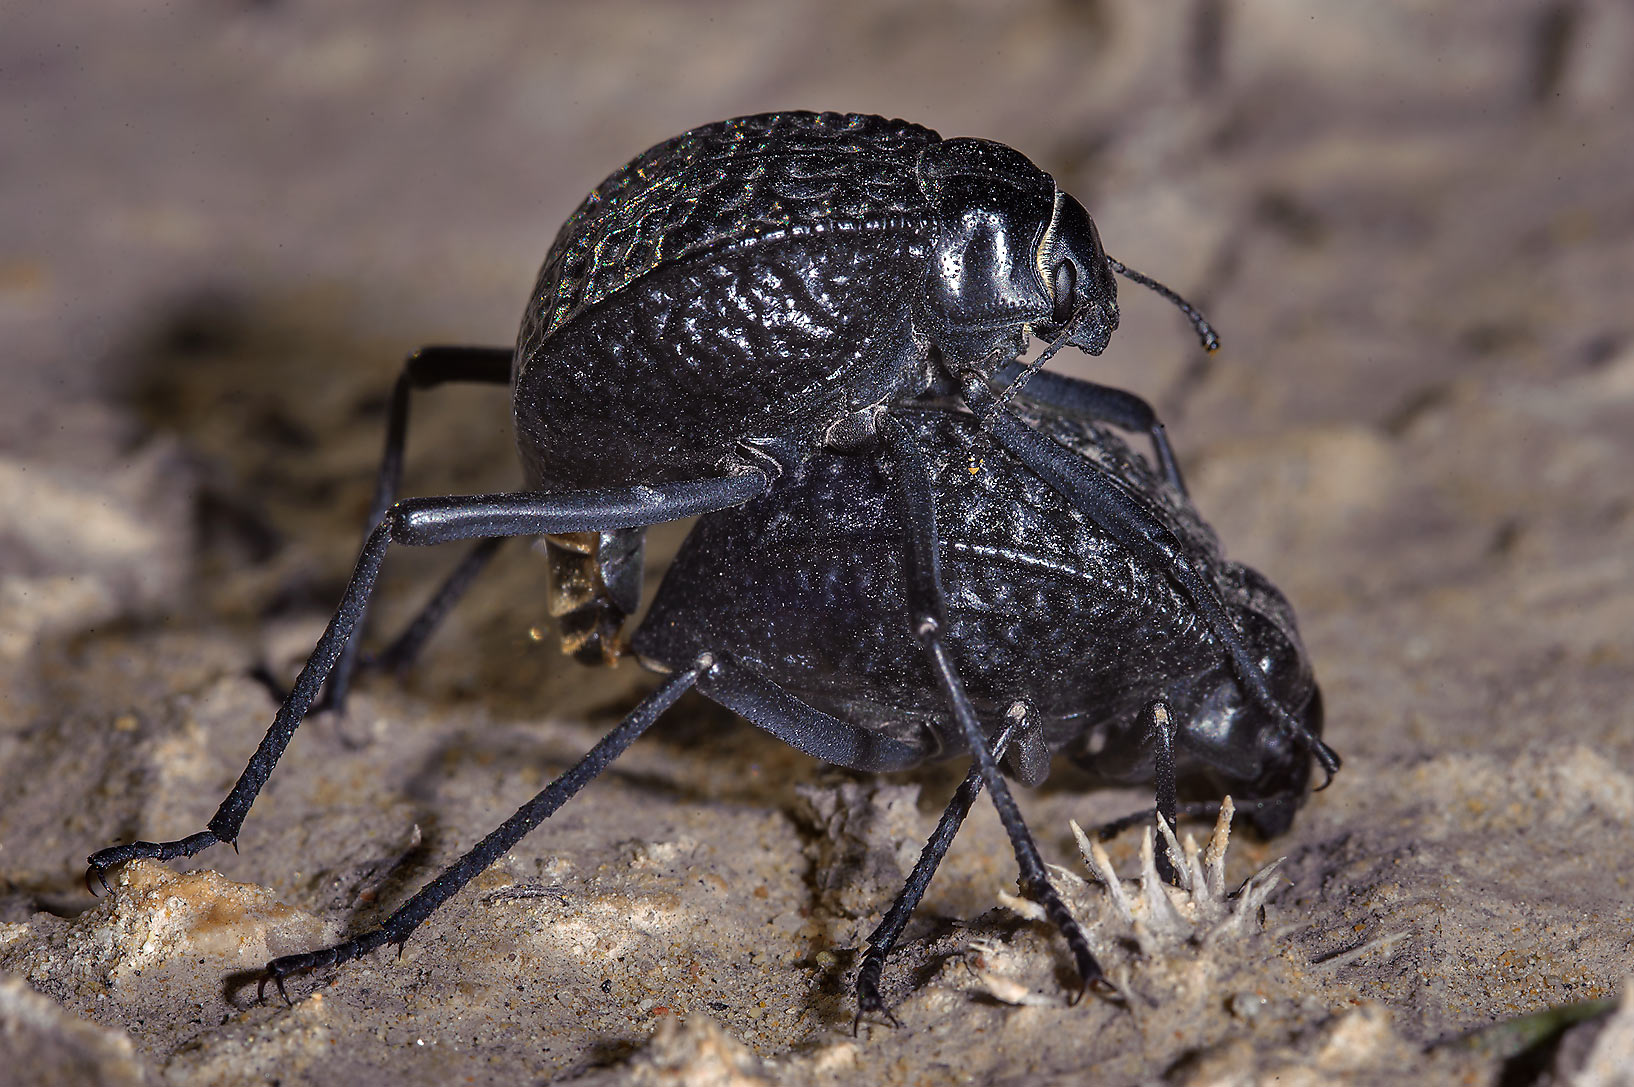 Mating pitted darkling beetles (Adesmia...of Salwa Rd. in south-western Qatar